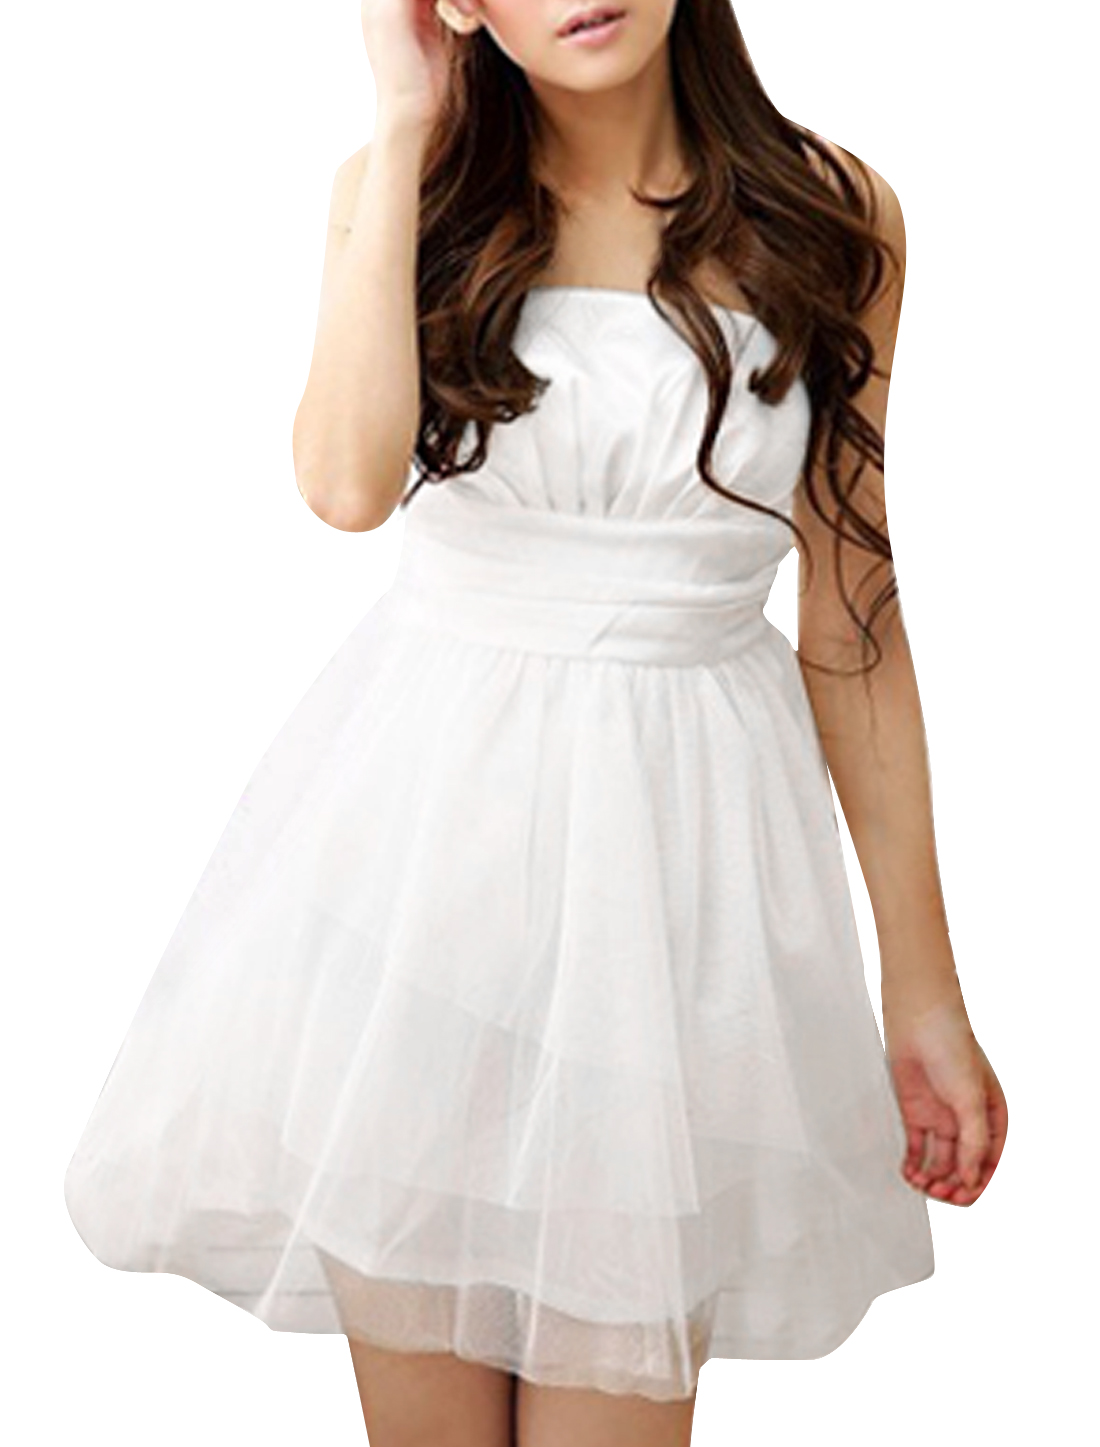 Lady Pure White Color Smocked Elastic Back Ball Gowm Mini Dress L